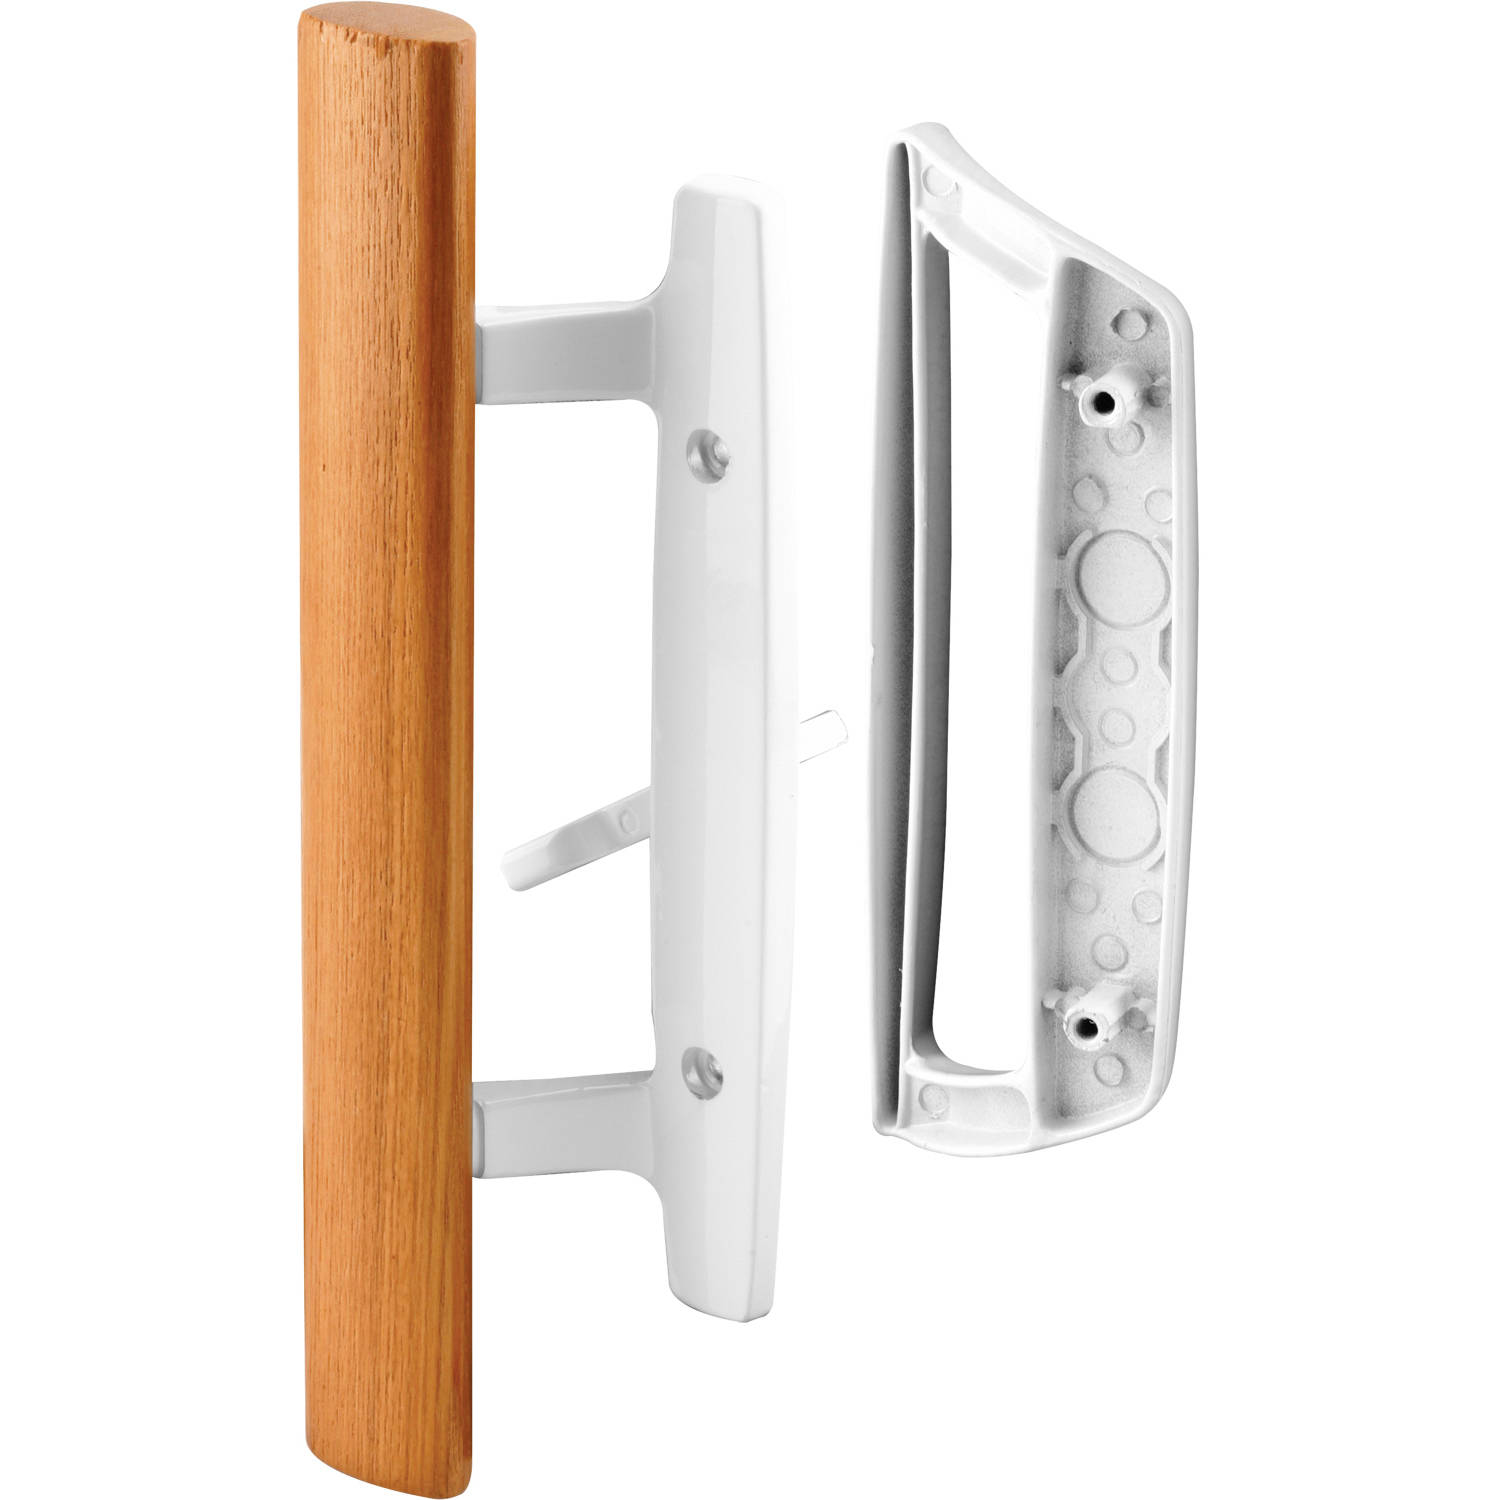 Prime-Line Products C 1204 Sliding Door Handle Set, Wood Handle ...